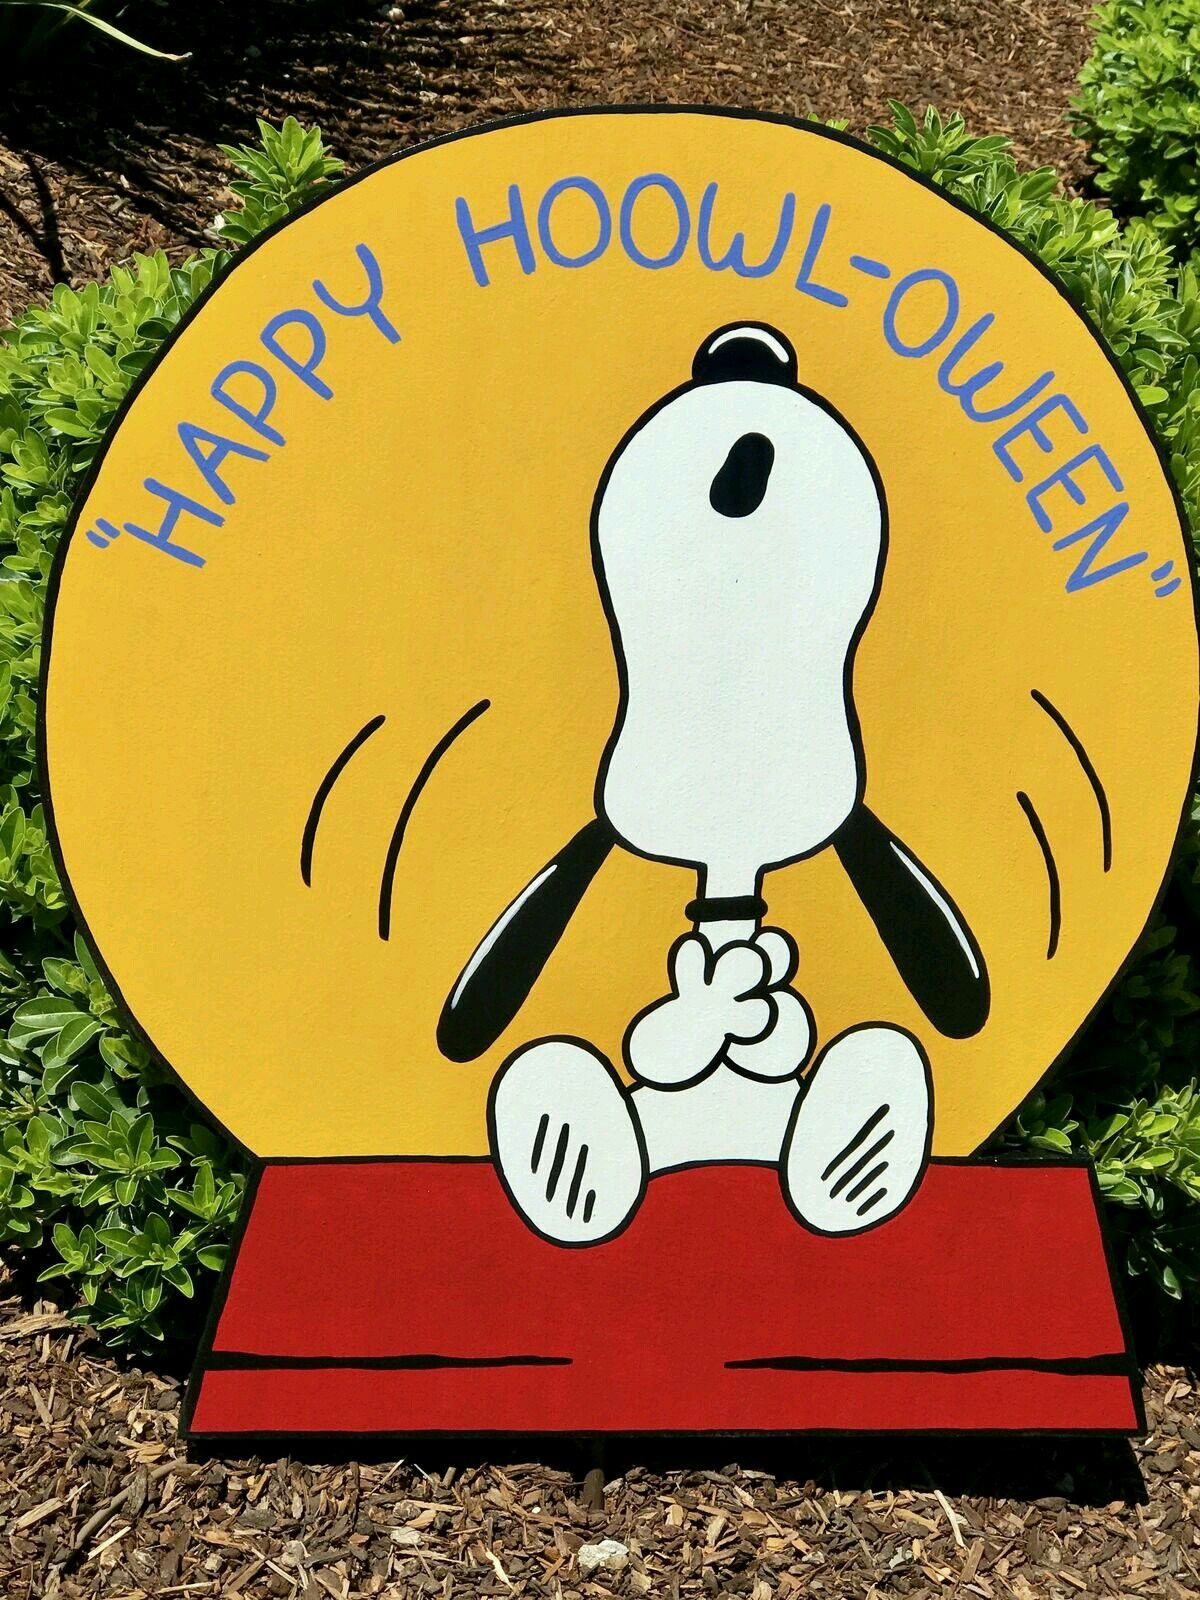 happy halloween to you!🎃👻🎃👻🎃👻🎃👻🎃👻🎃 | snoopy | pinterest